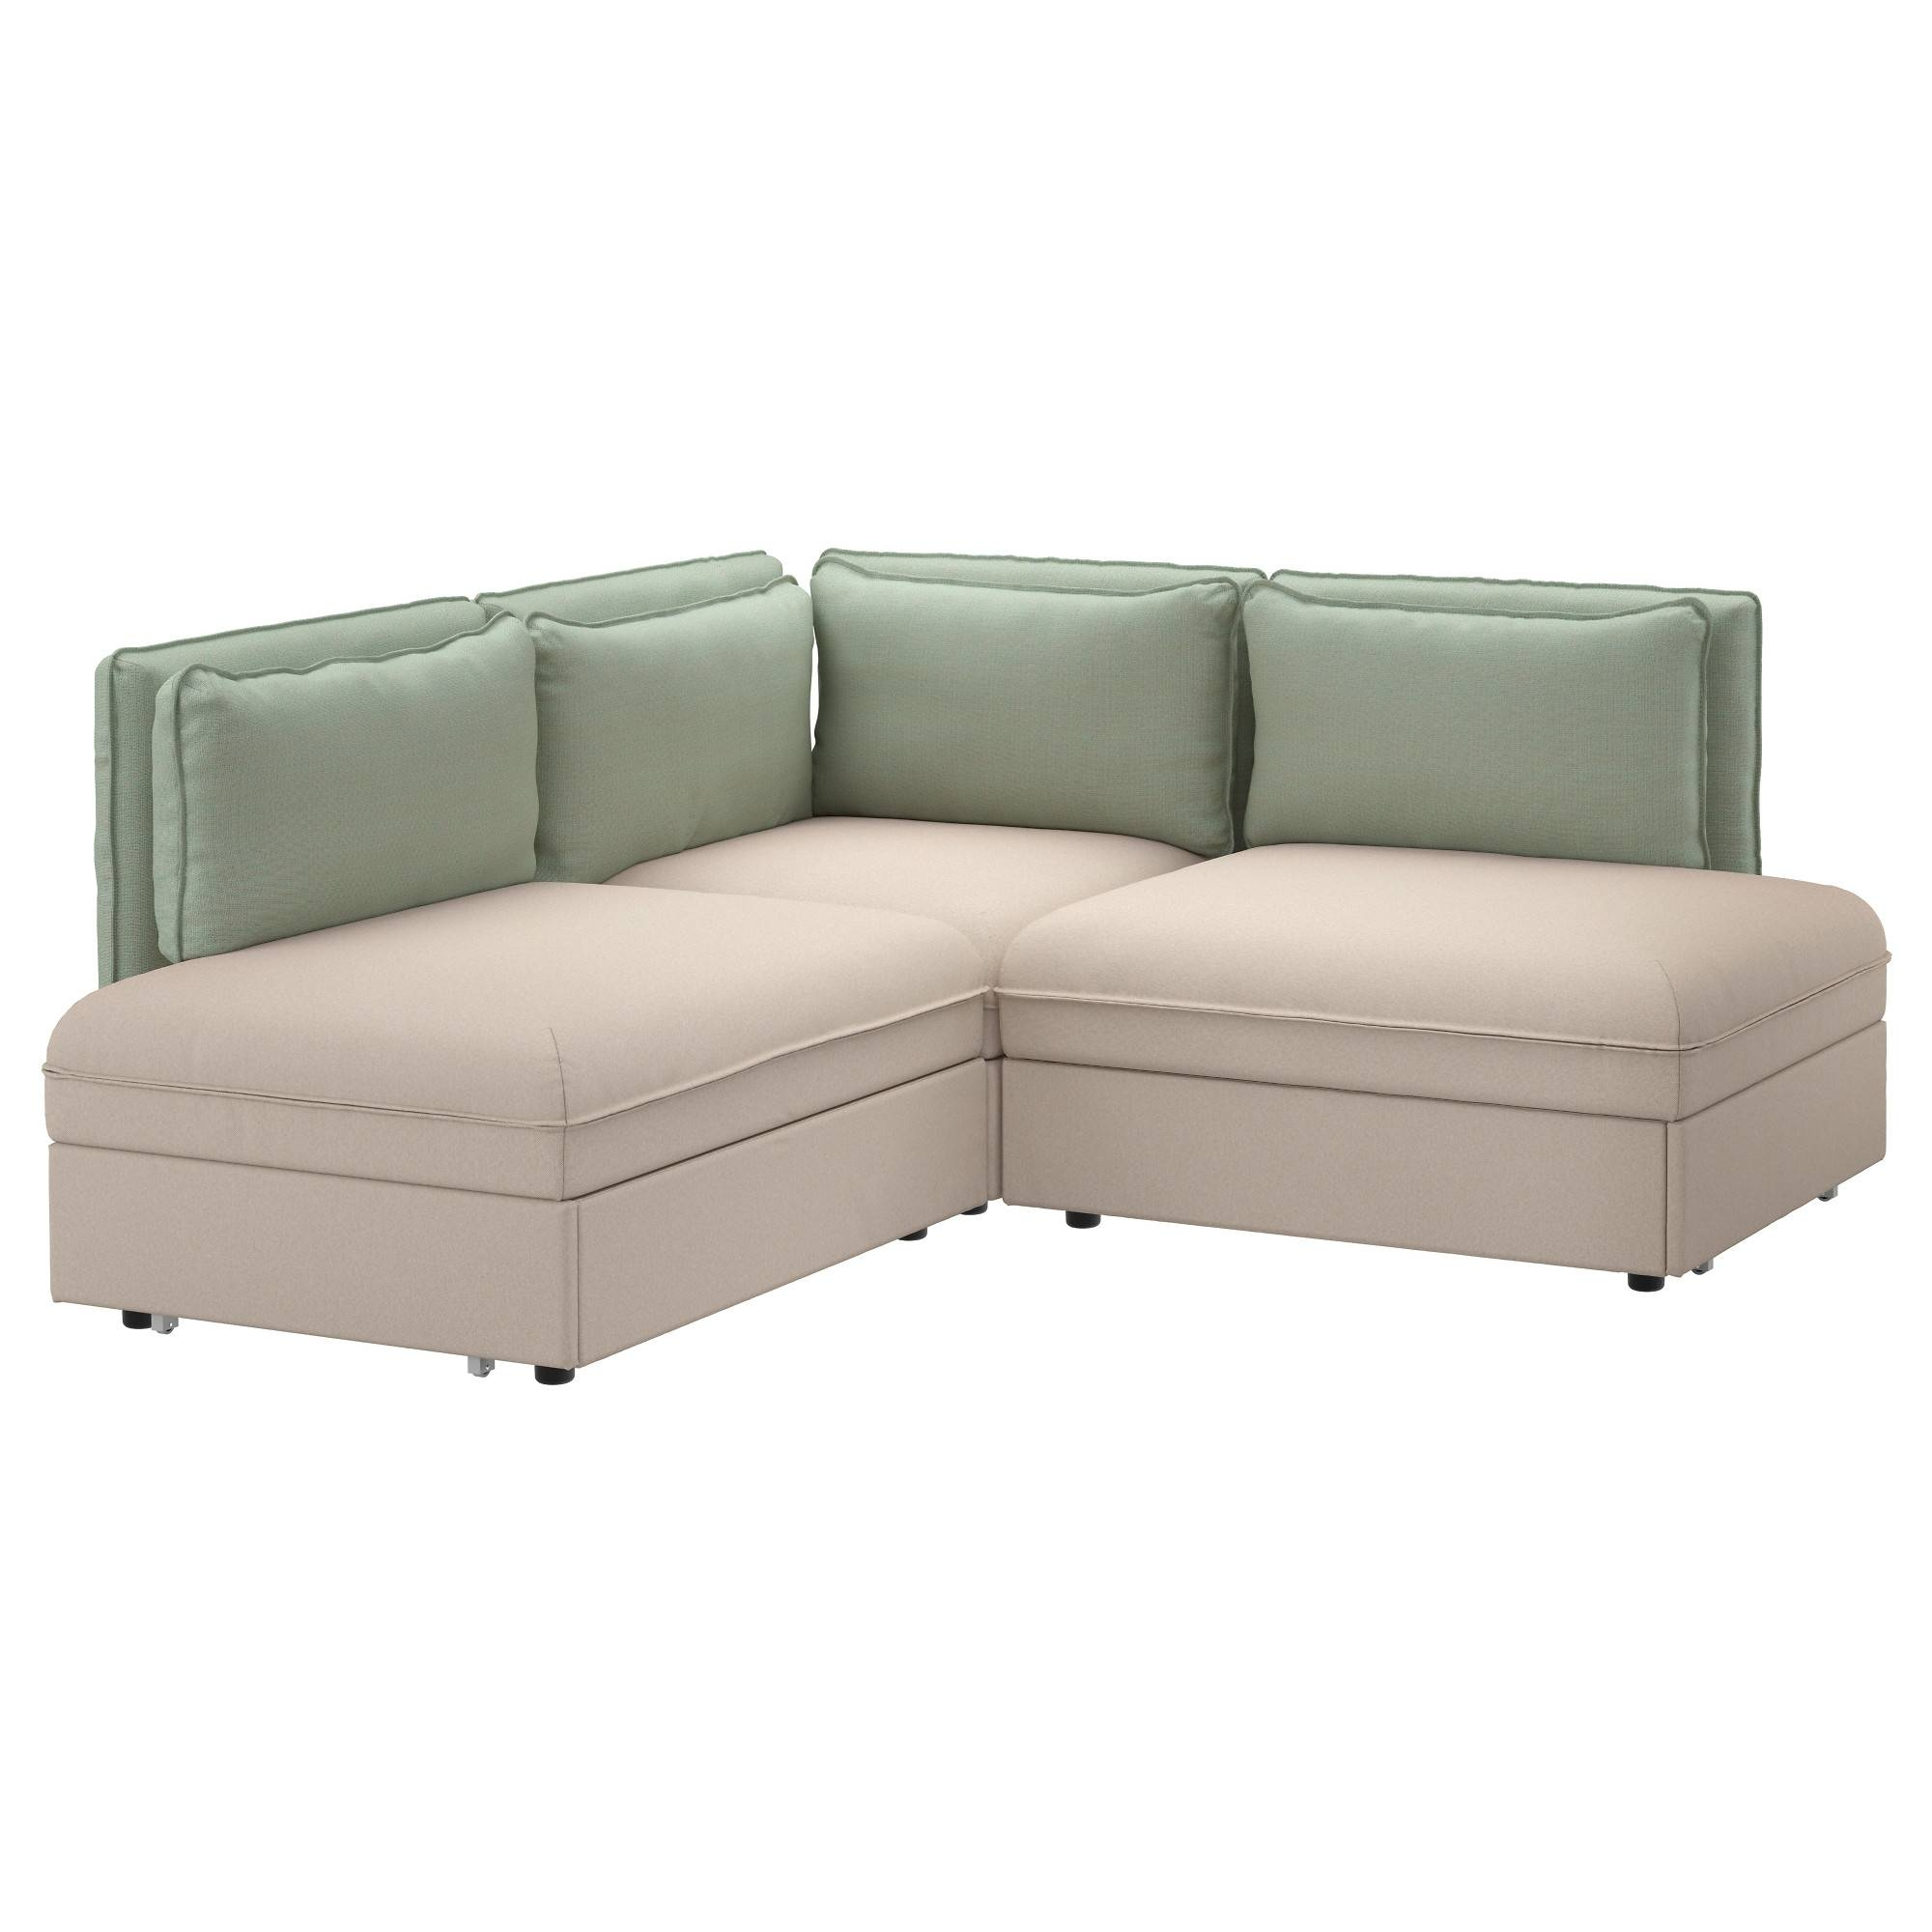 Sofa Beds & Futons – Ikea With Regard To Ikea Sectional Sofa Sleeper (View 22 of 25)